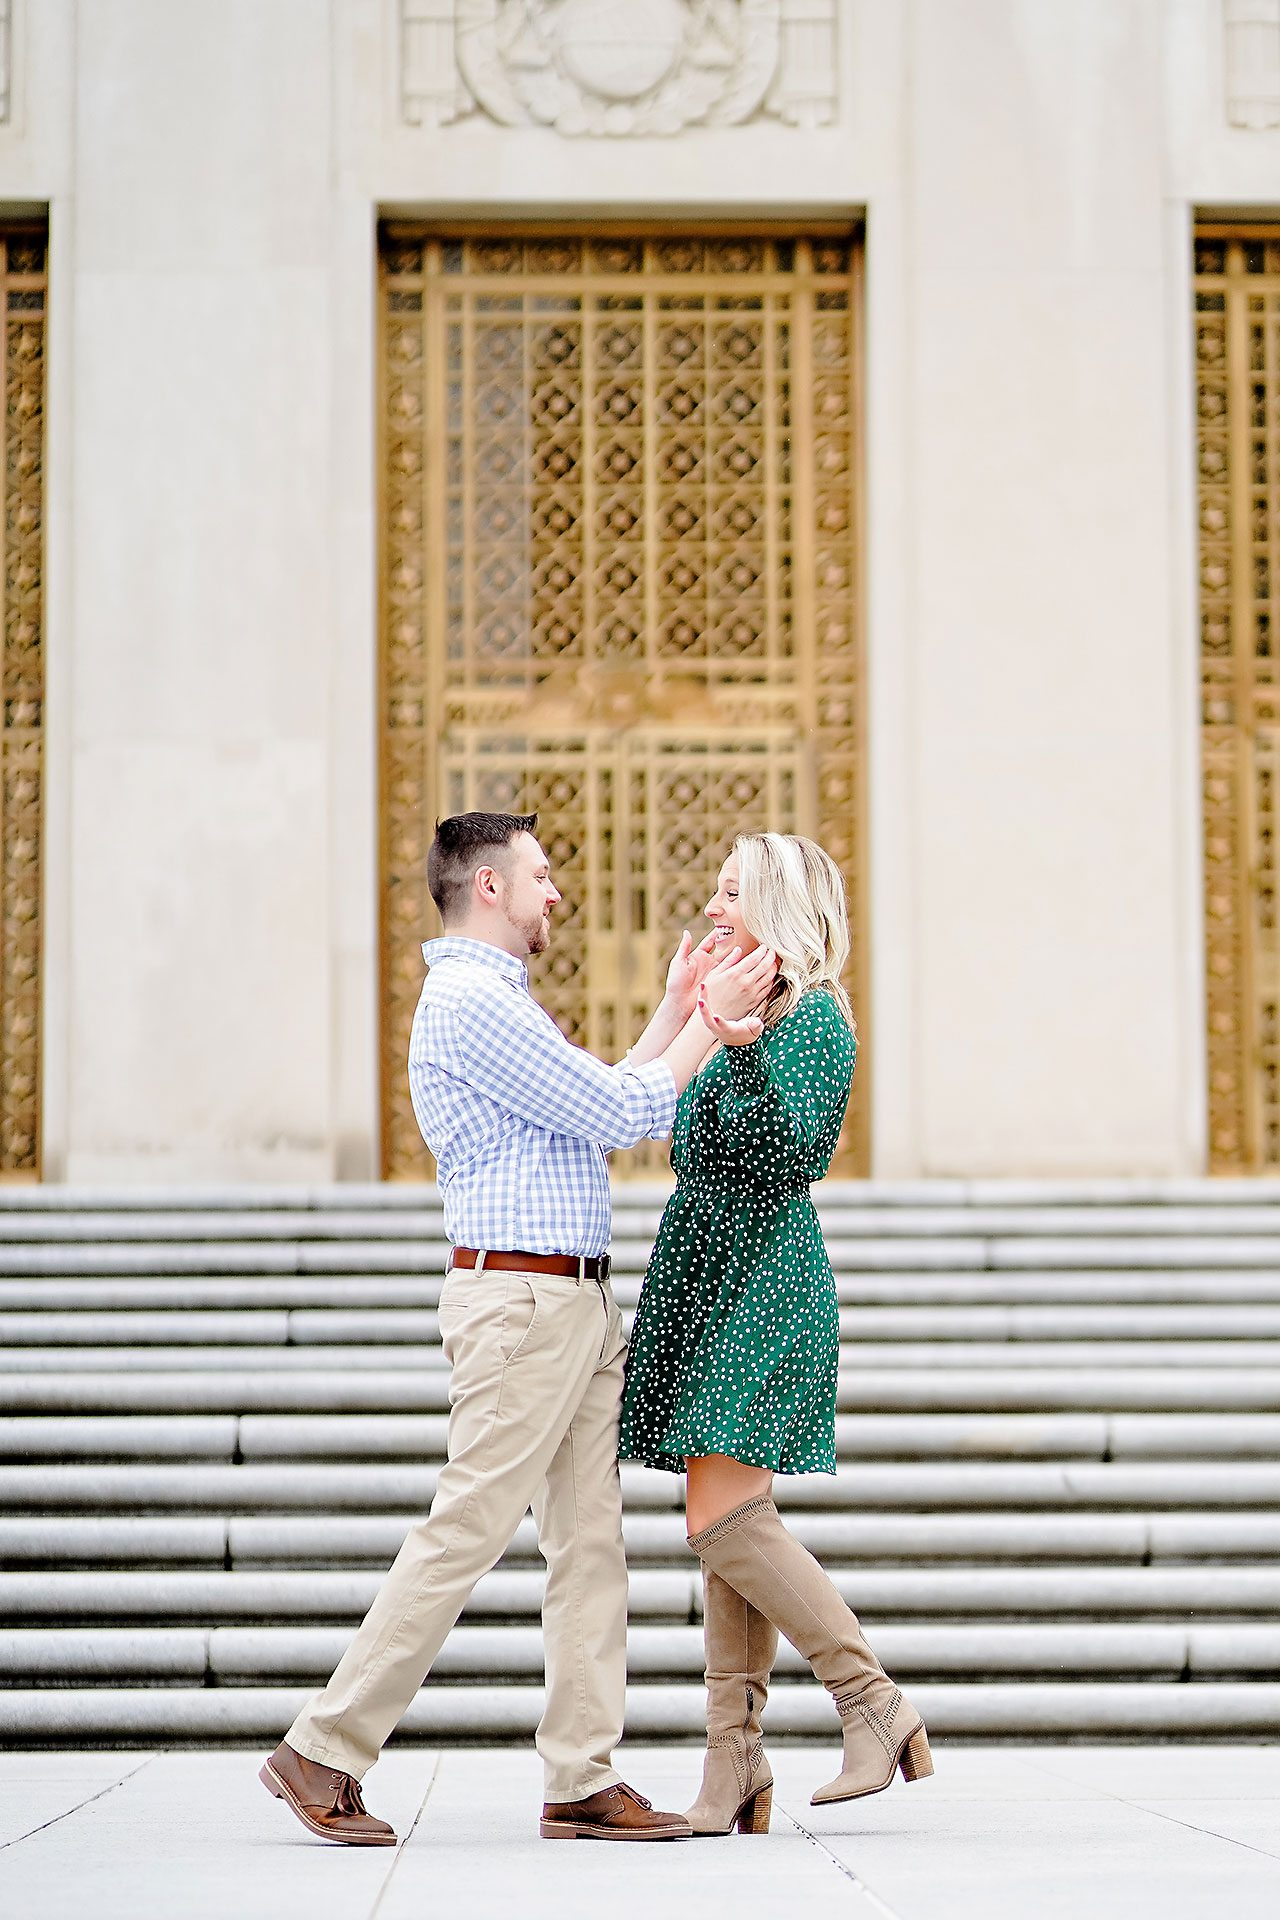 Kristen Jonny Indianapolis Downtown Engagement Session 052